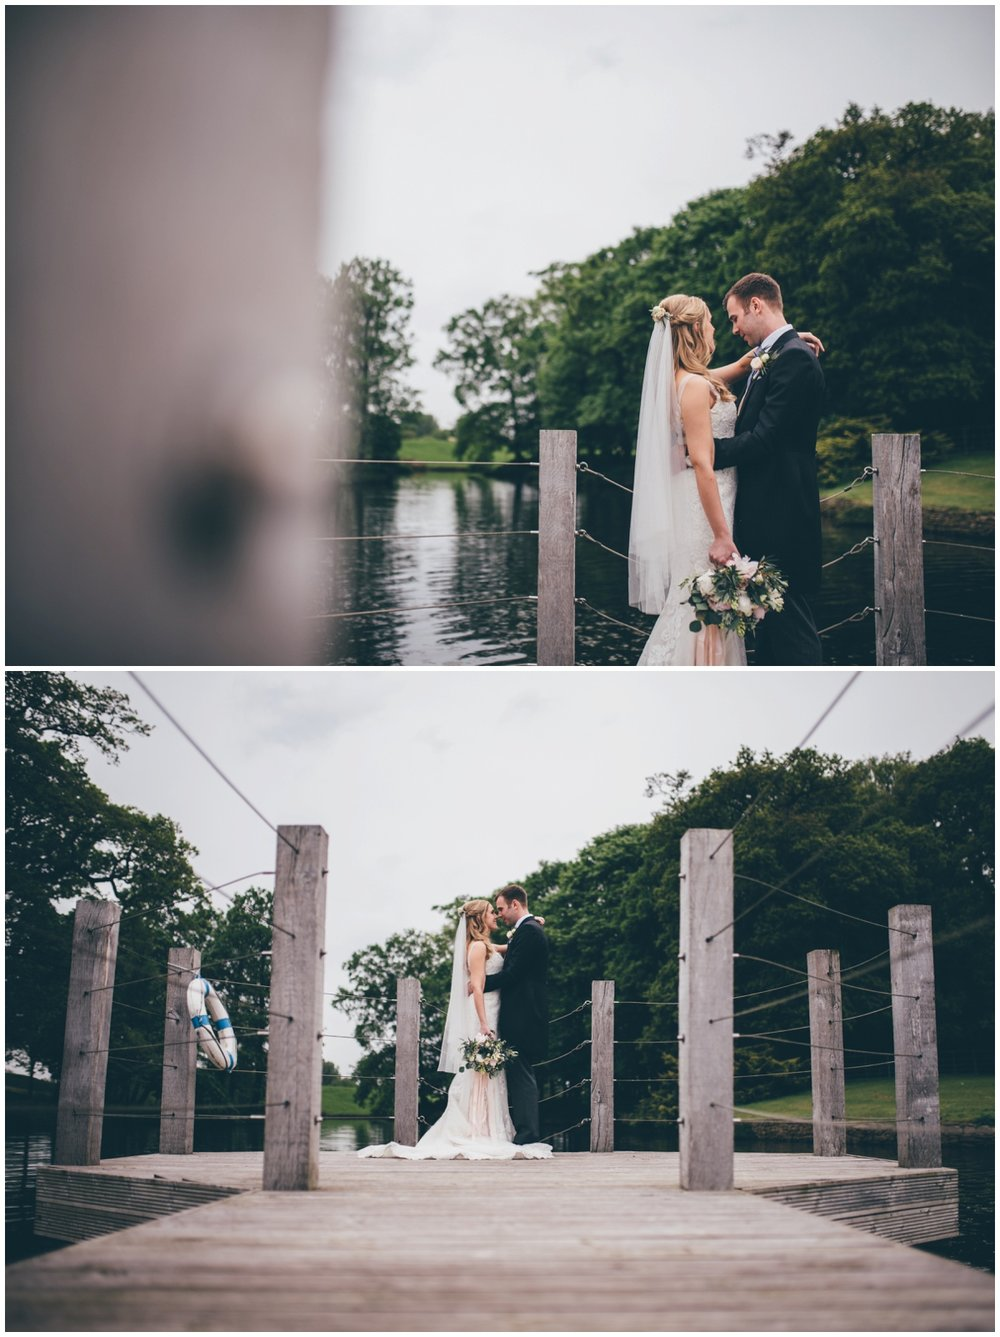 The bride and groom stand and cuddle on the jetty at Merrydale Manor.